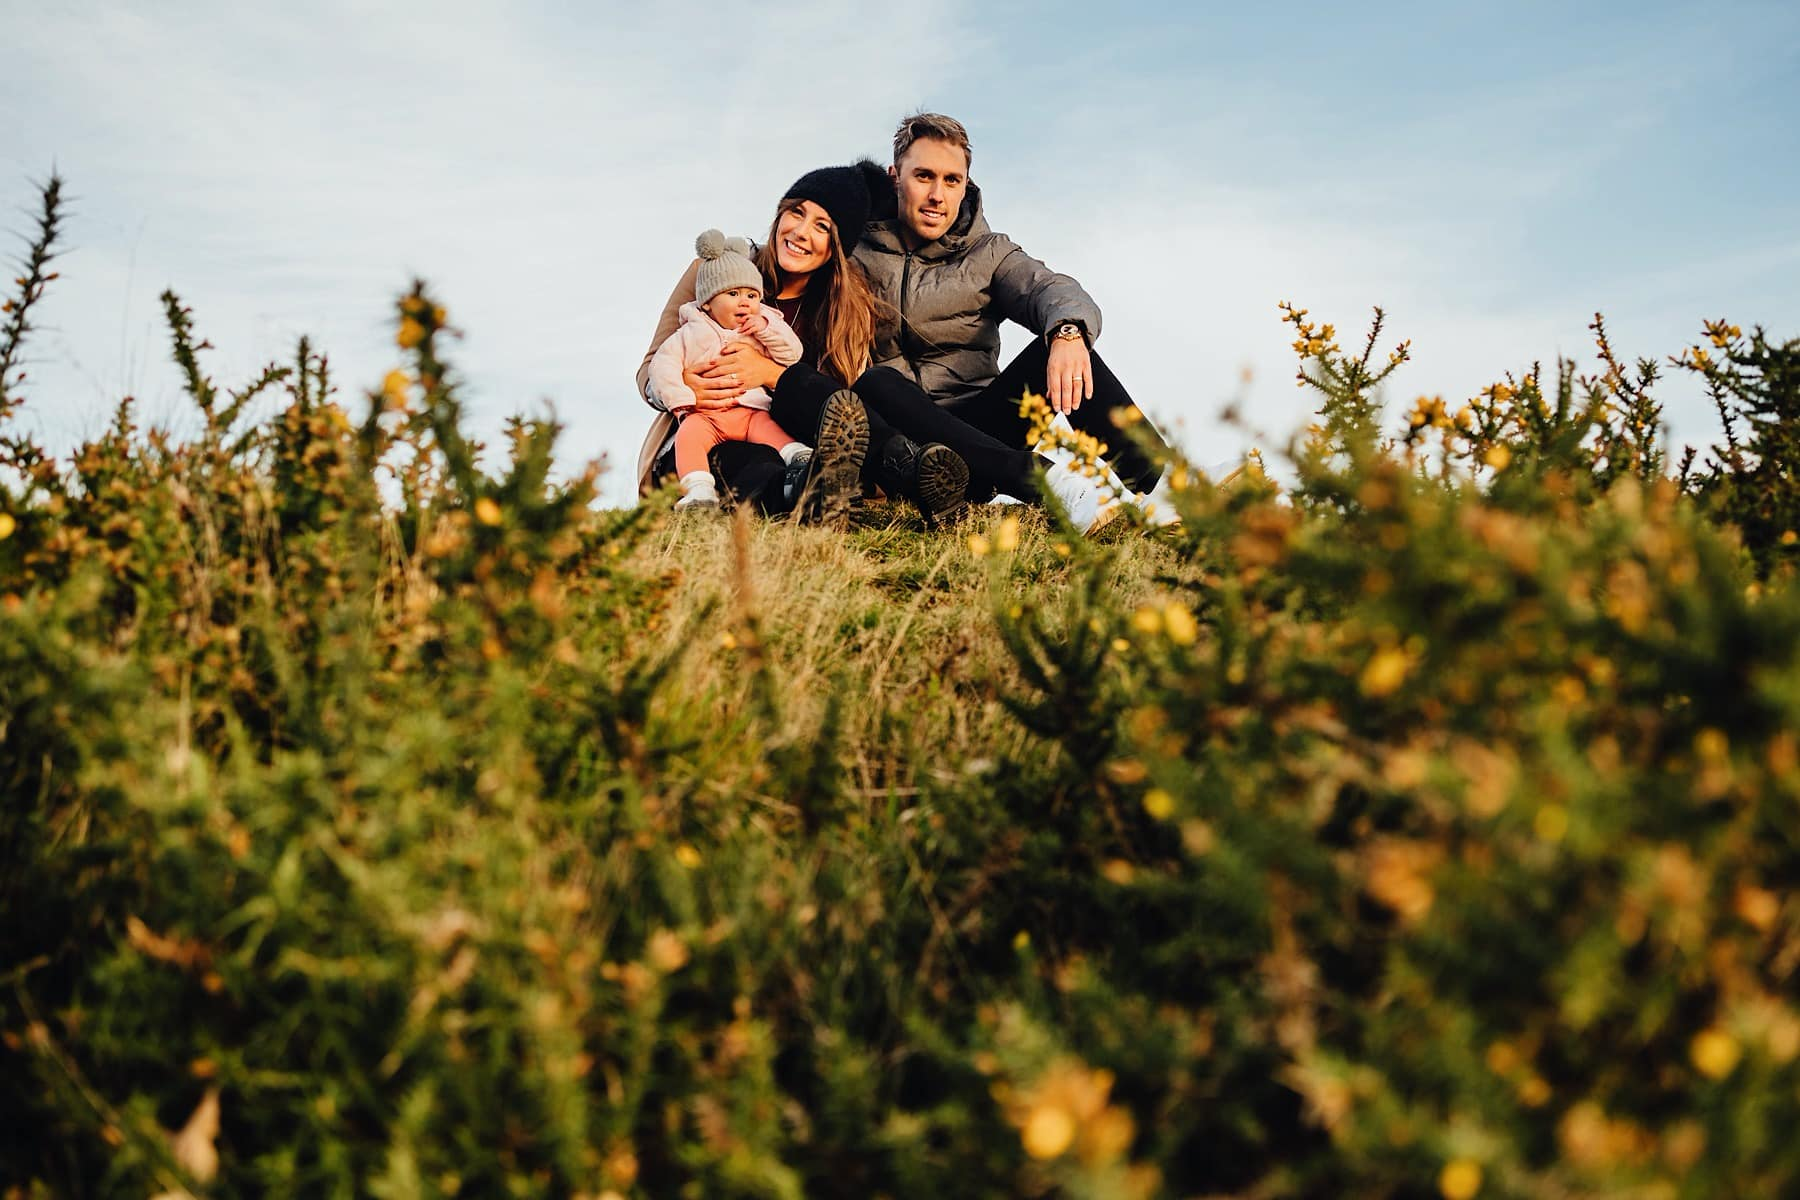 MALVERN HILLS FAMILY PHOTOSHOOT